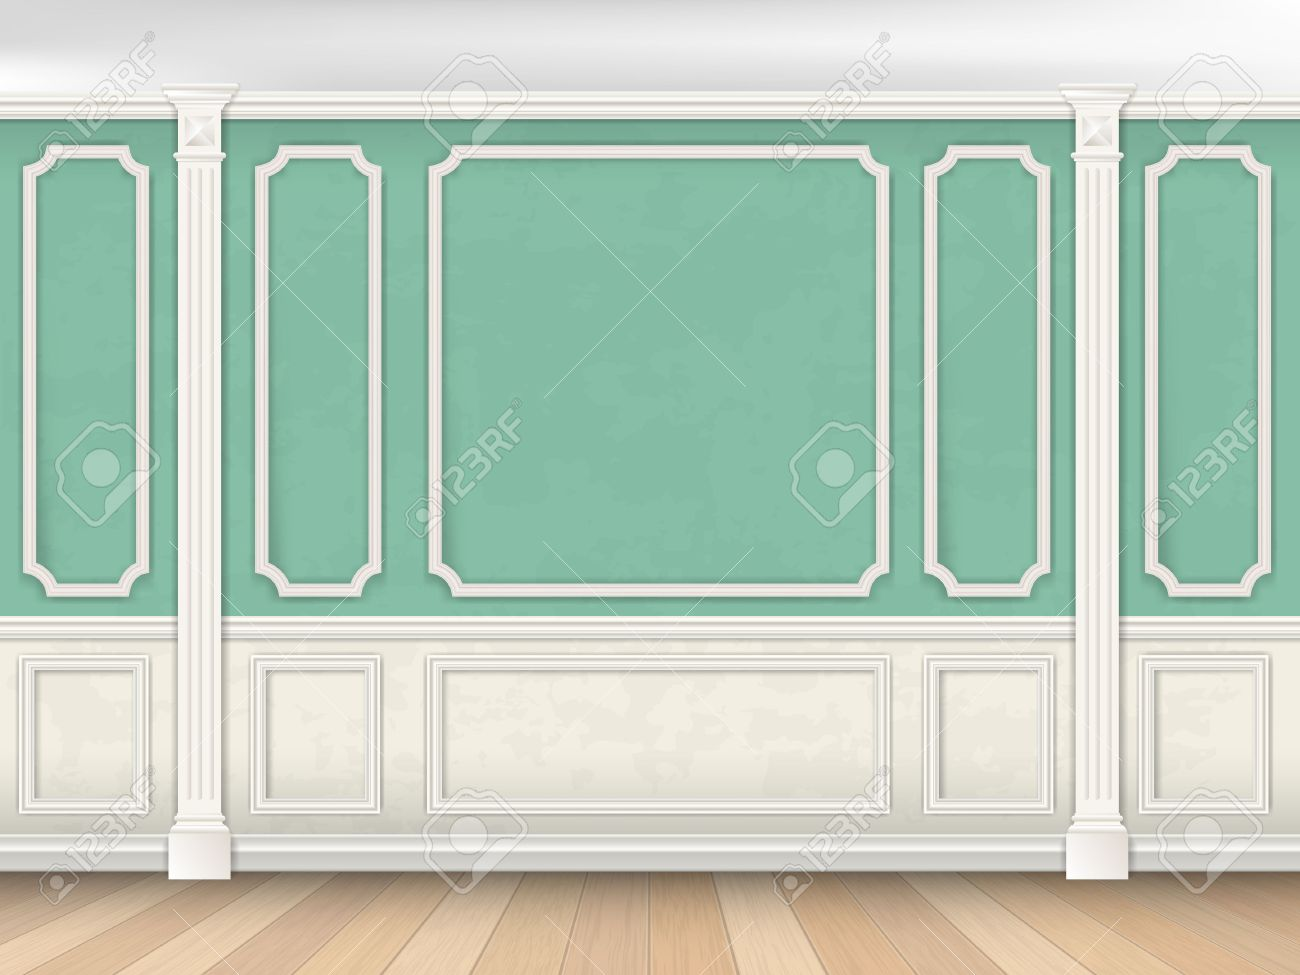 Green wall interior in classical style with pilasters and moldings